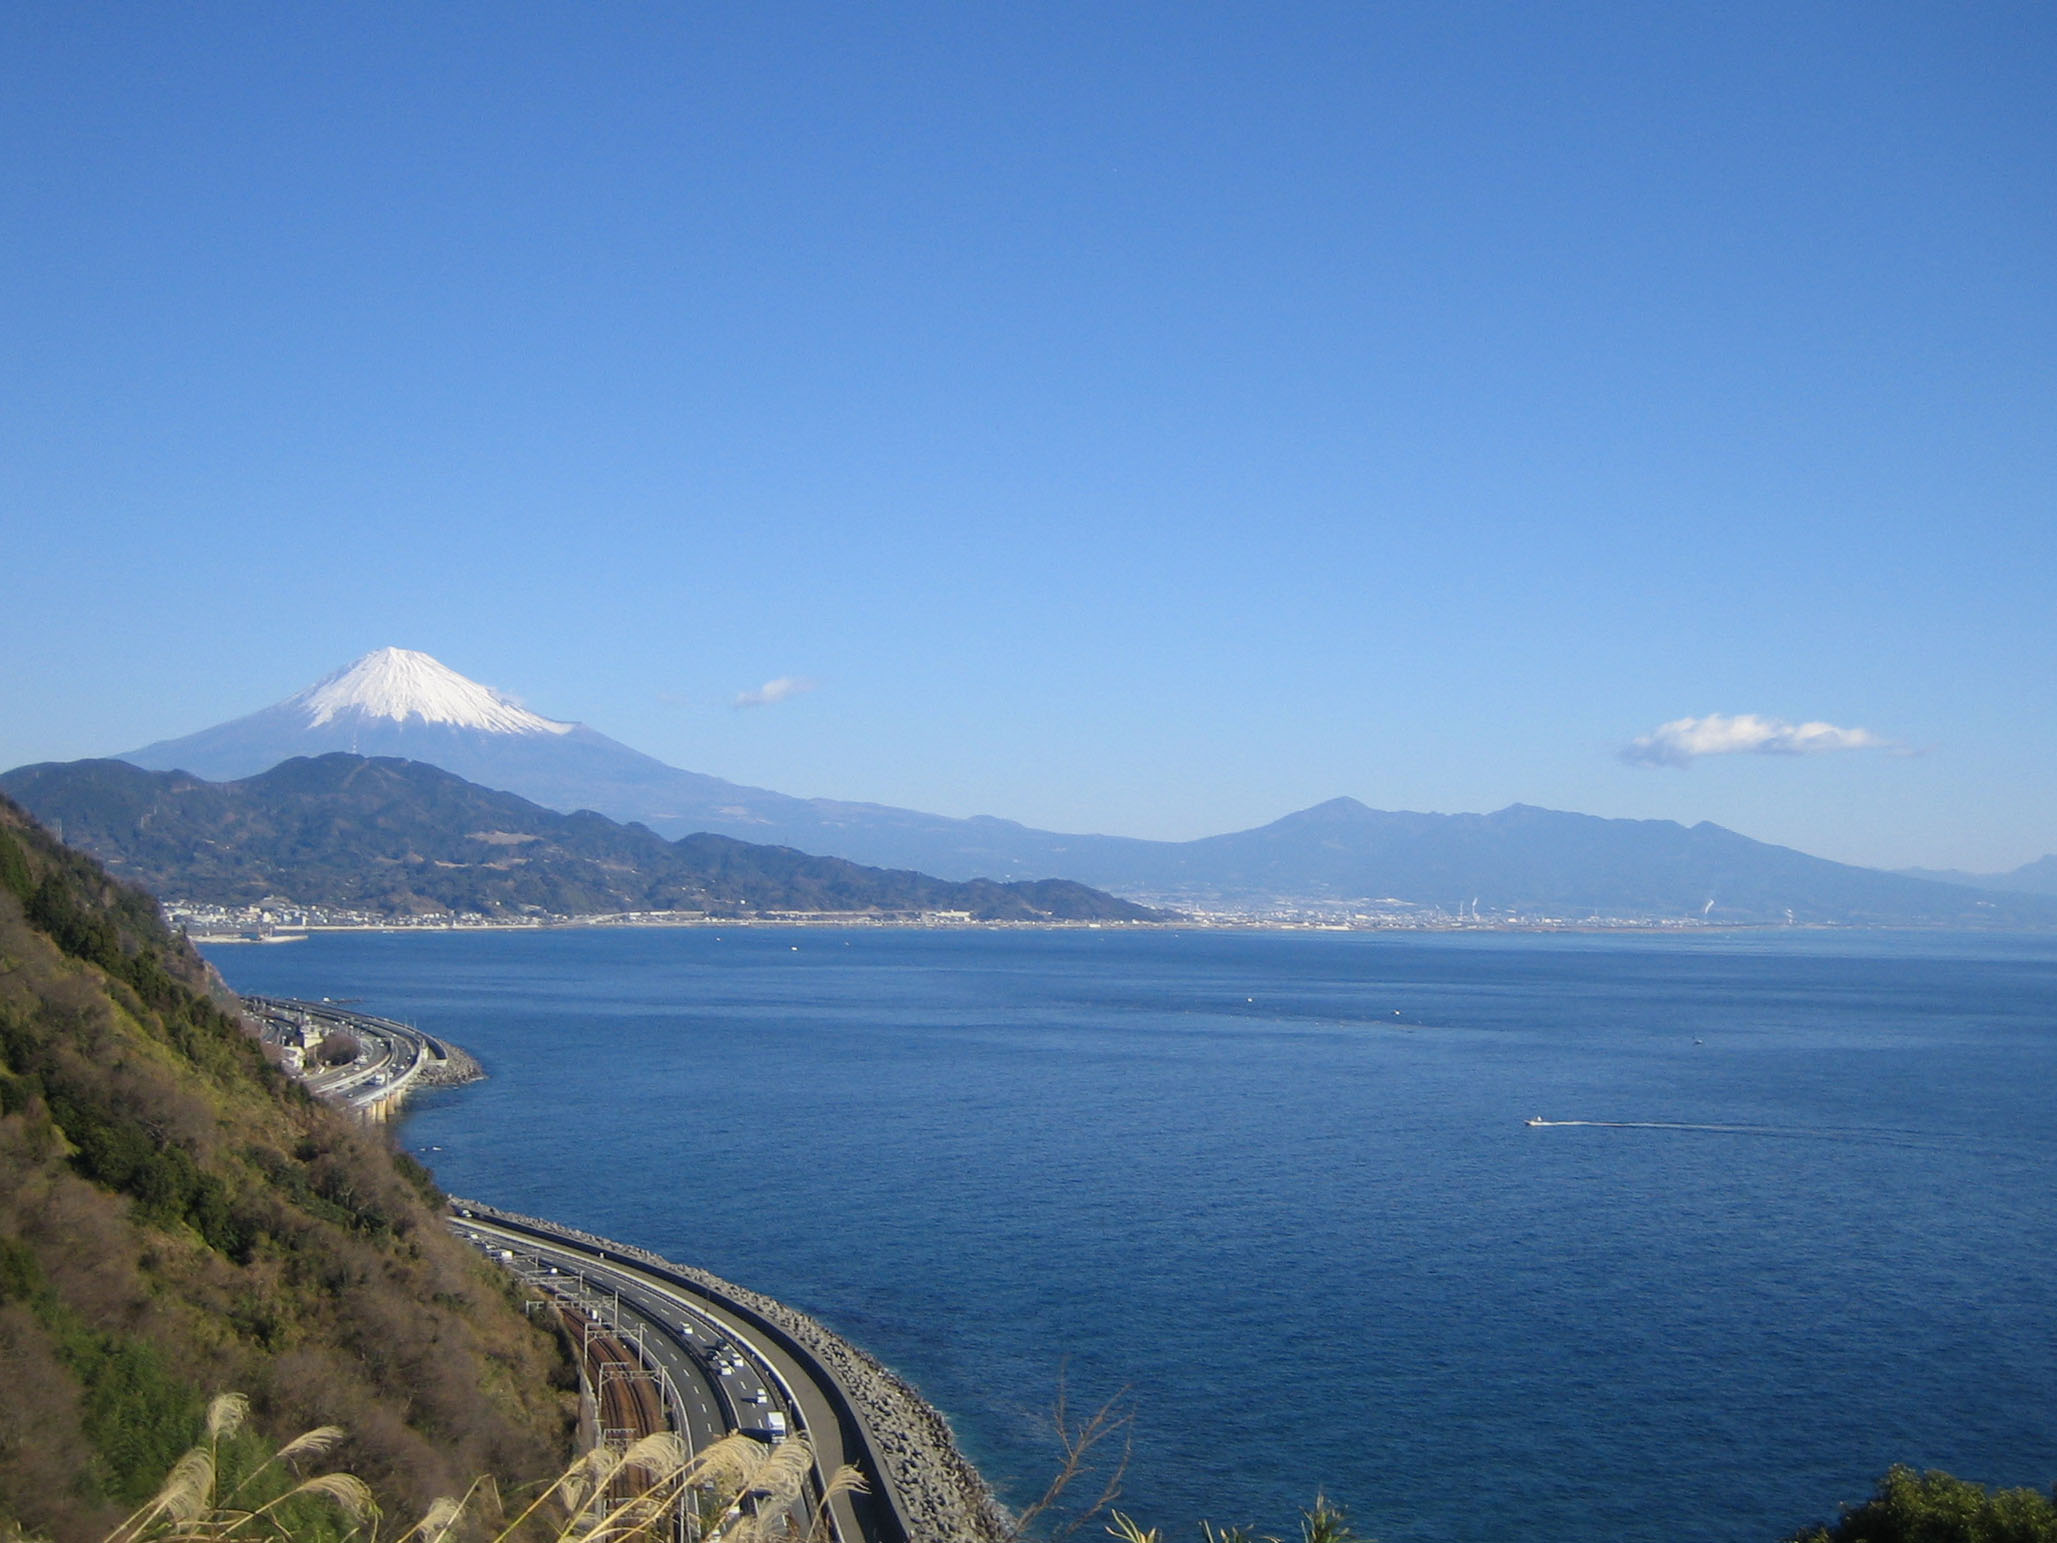 View of Mt. Fuji from SURUGA bay